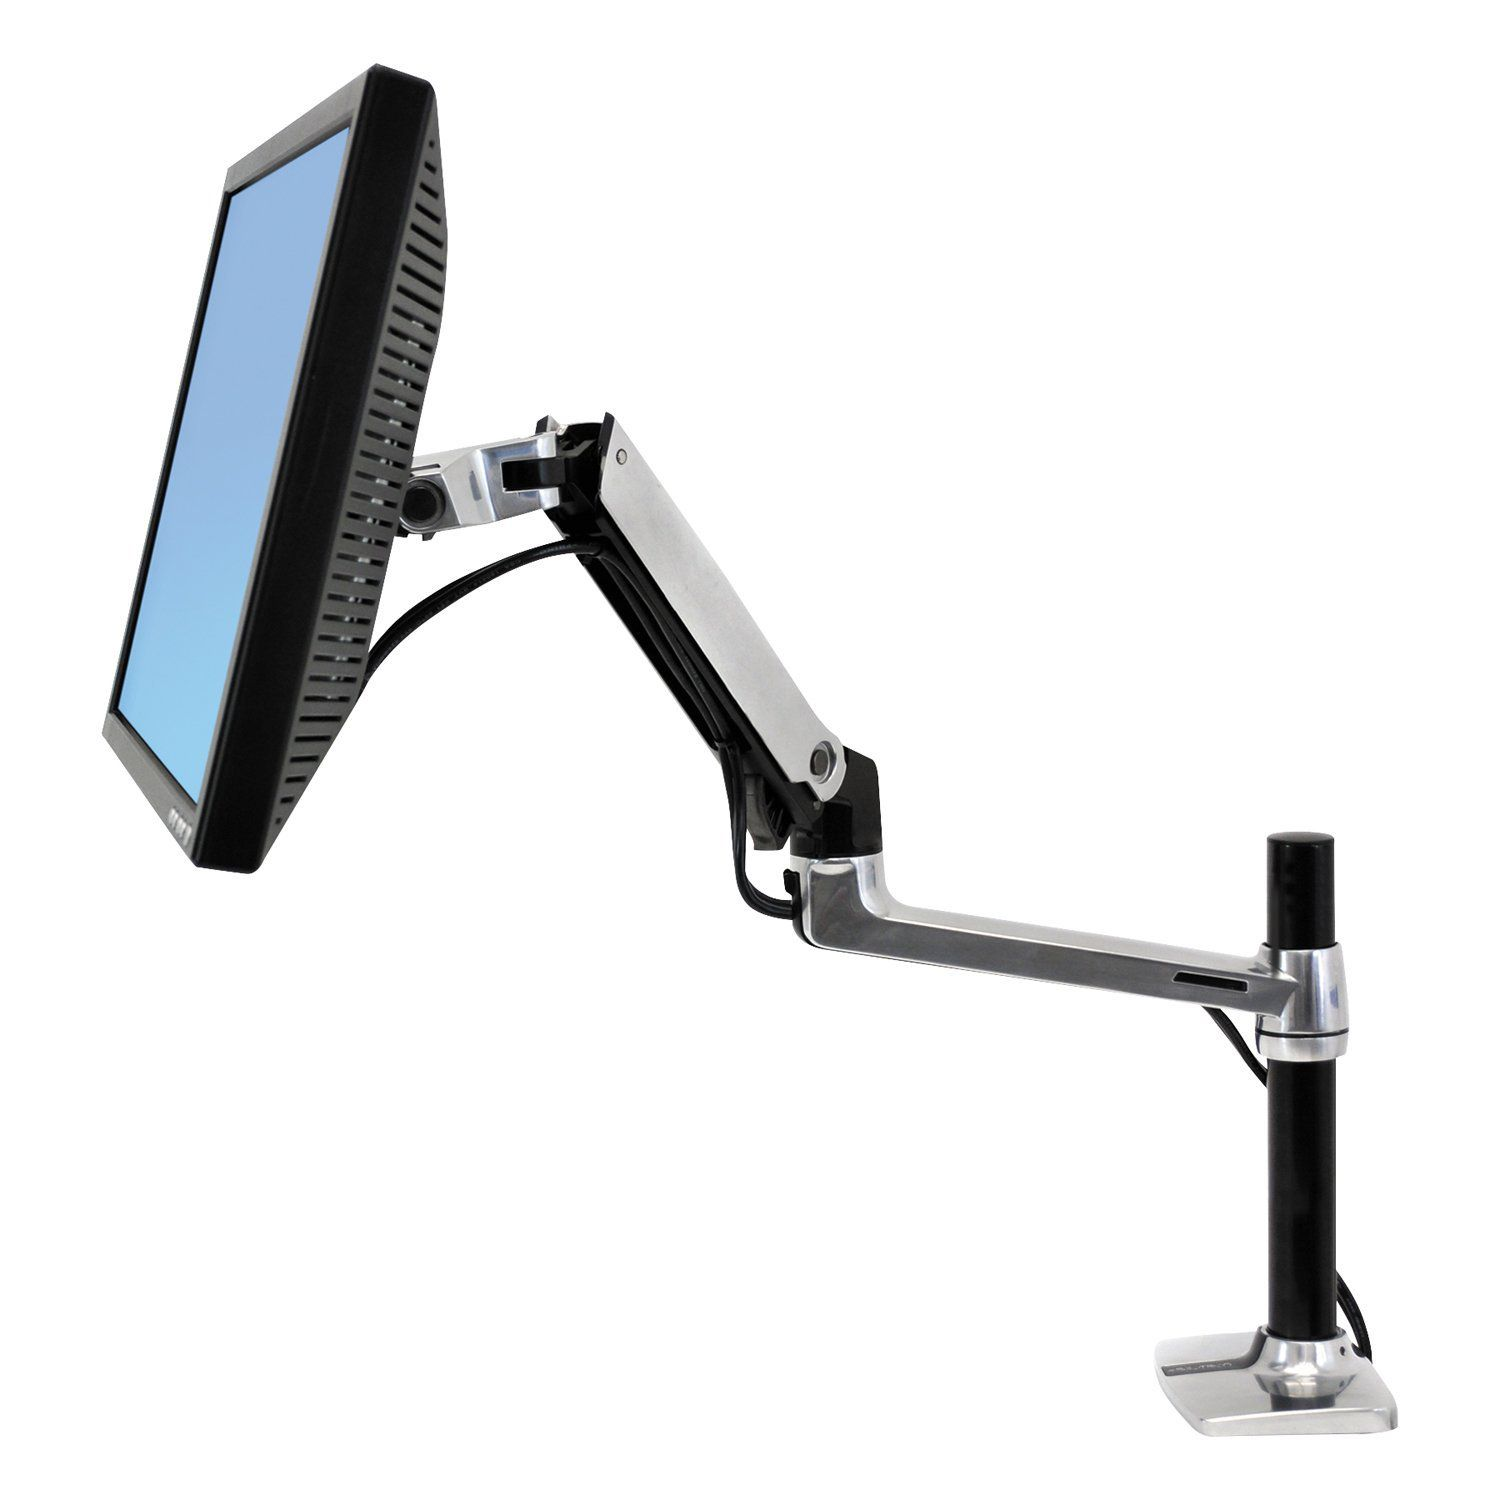 Best Overall Ergotron Lx Desk Mount Lcd Arm